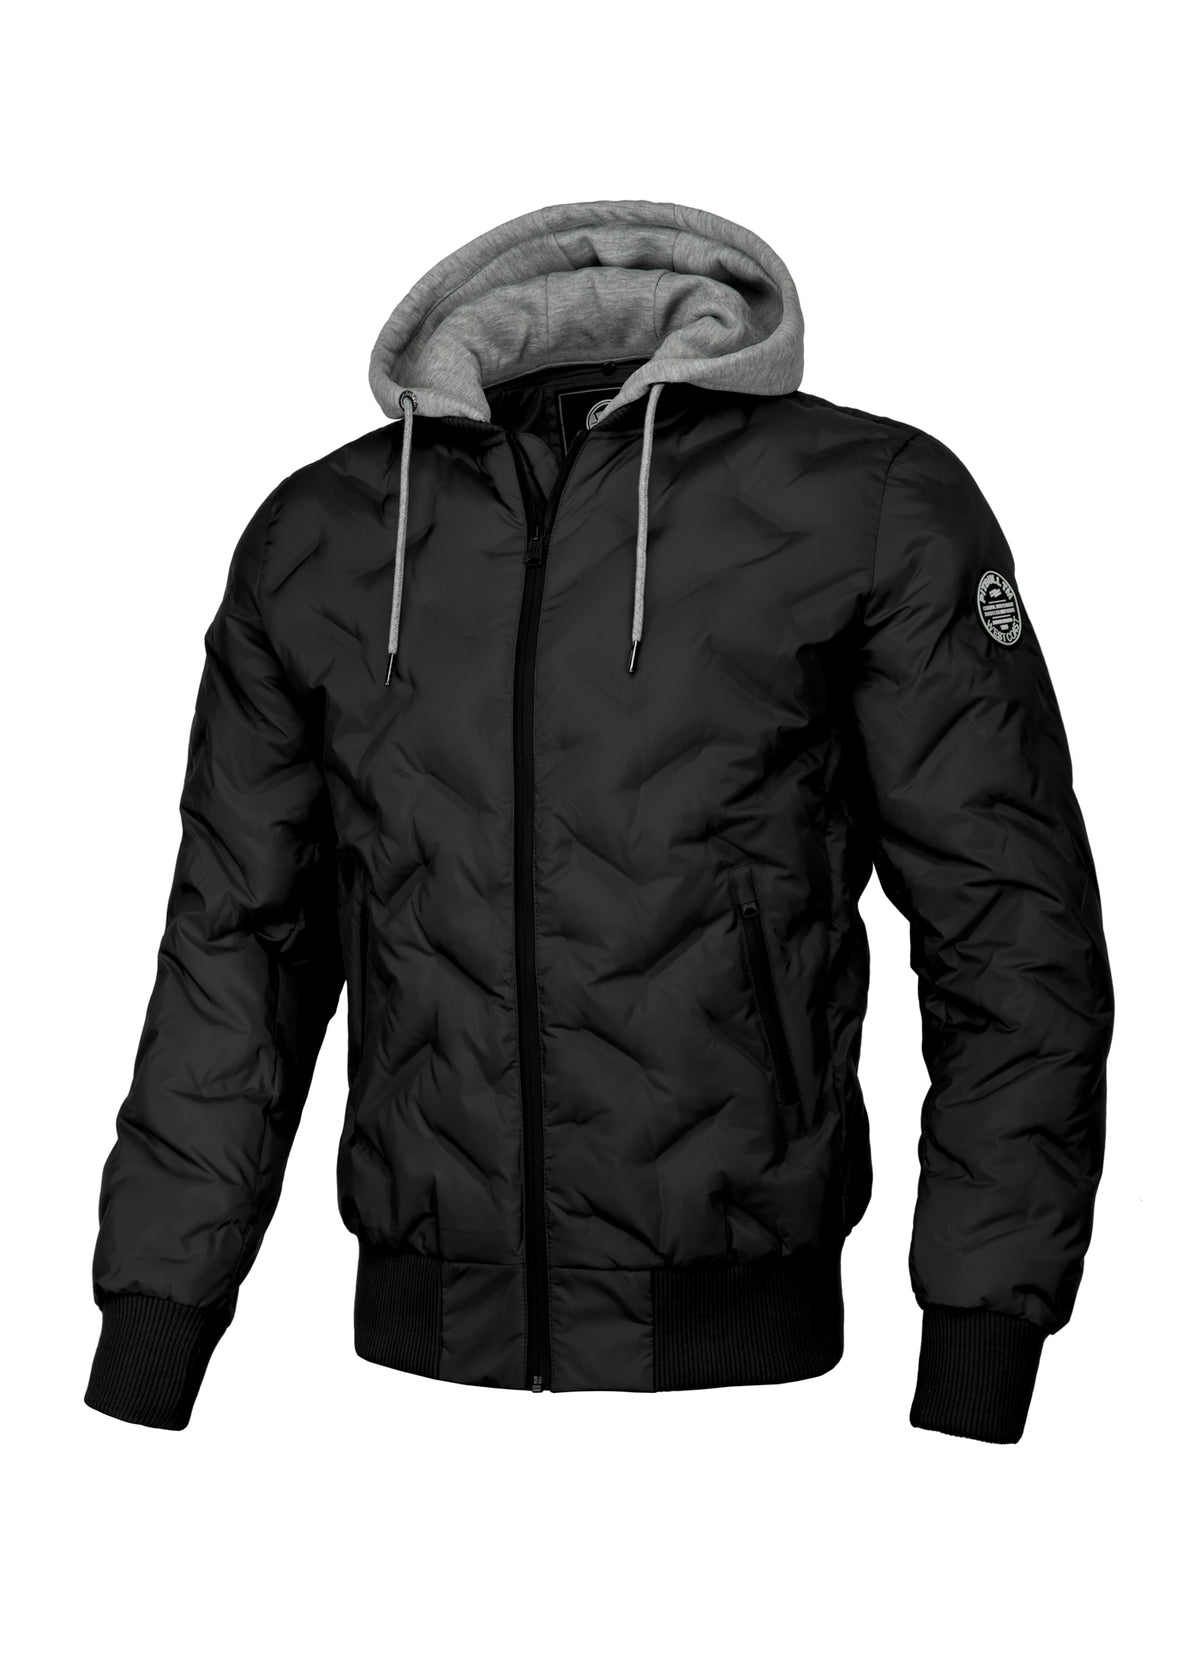 Quilted Jacket WINCHESTER Black - Pitbull West Coast U.S.A.